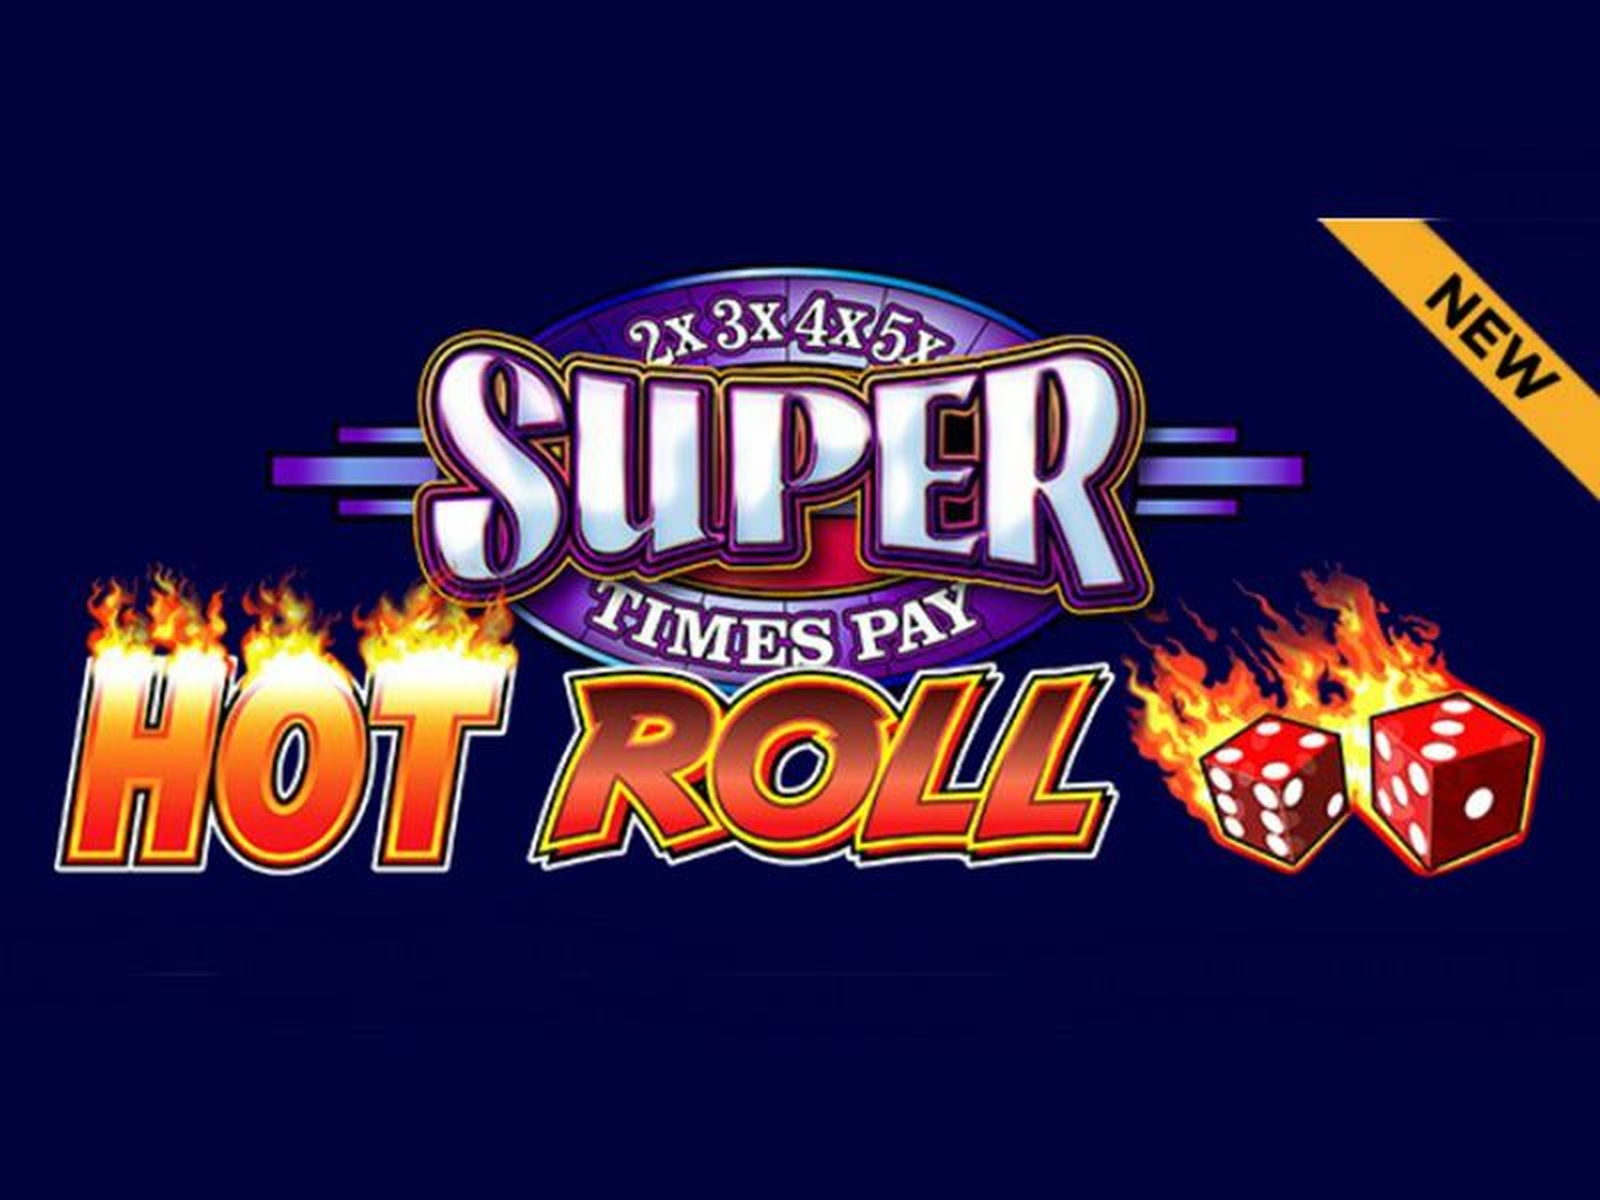 Se Super Times Pay Hot Roll Online Slot Demo Game, IGT